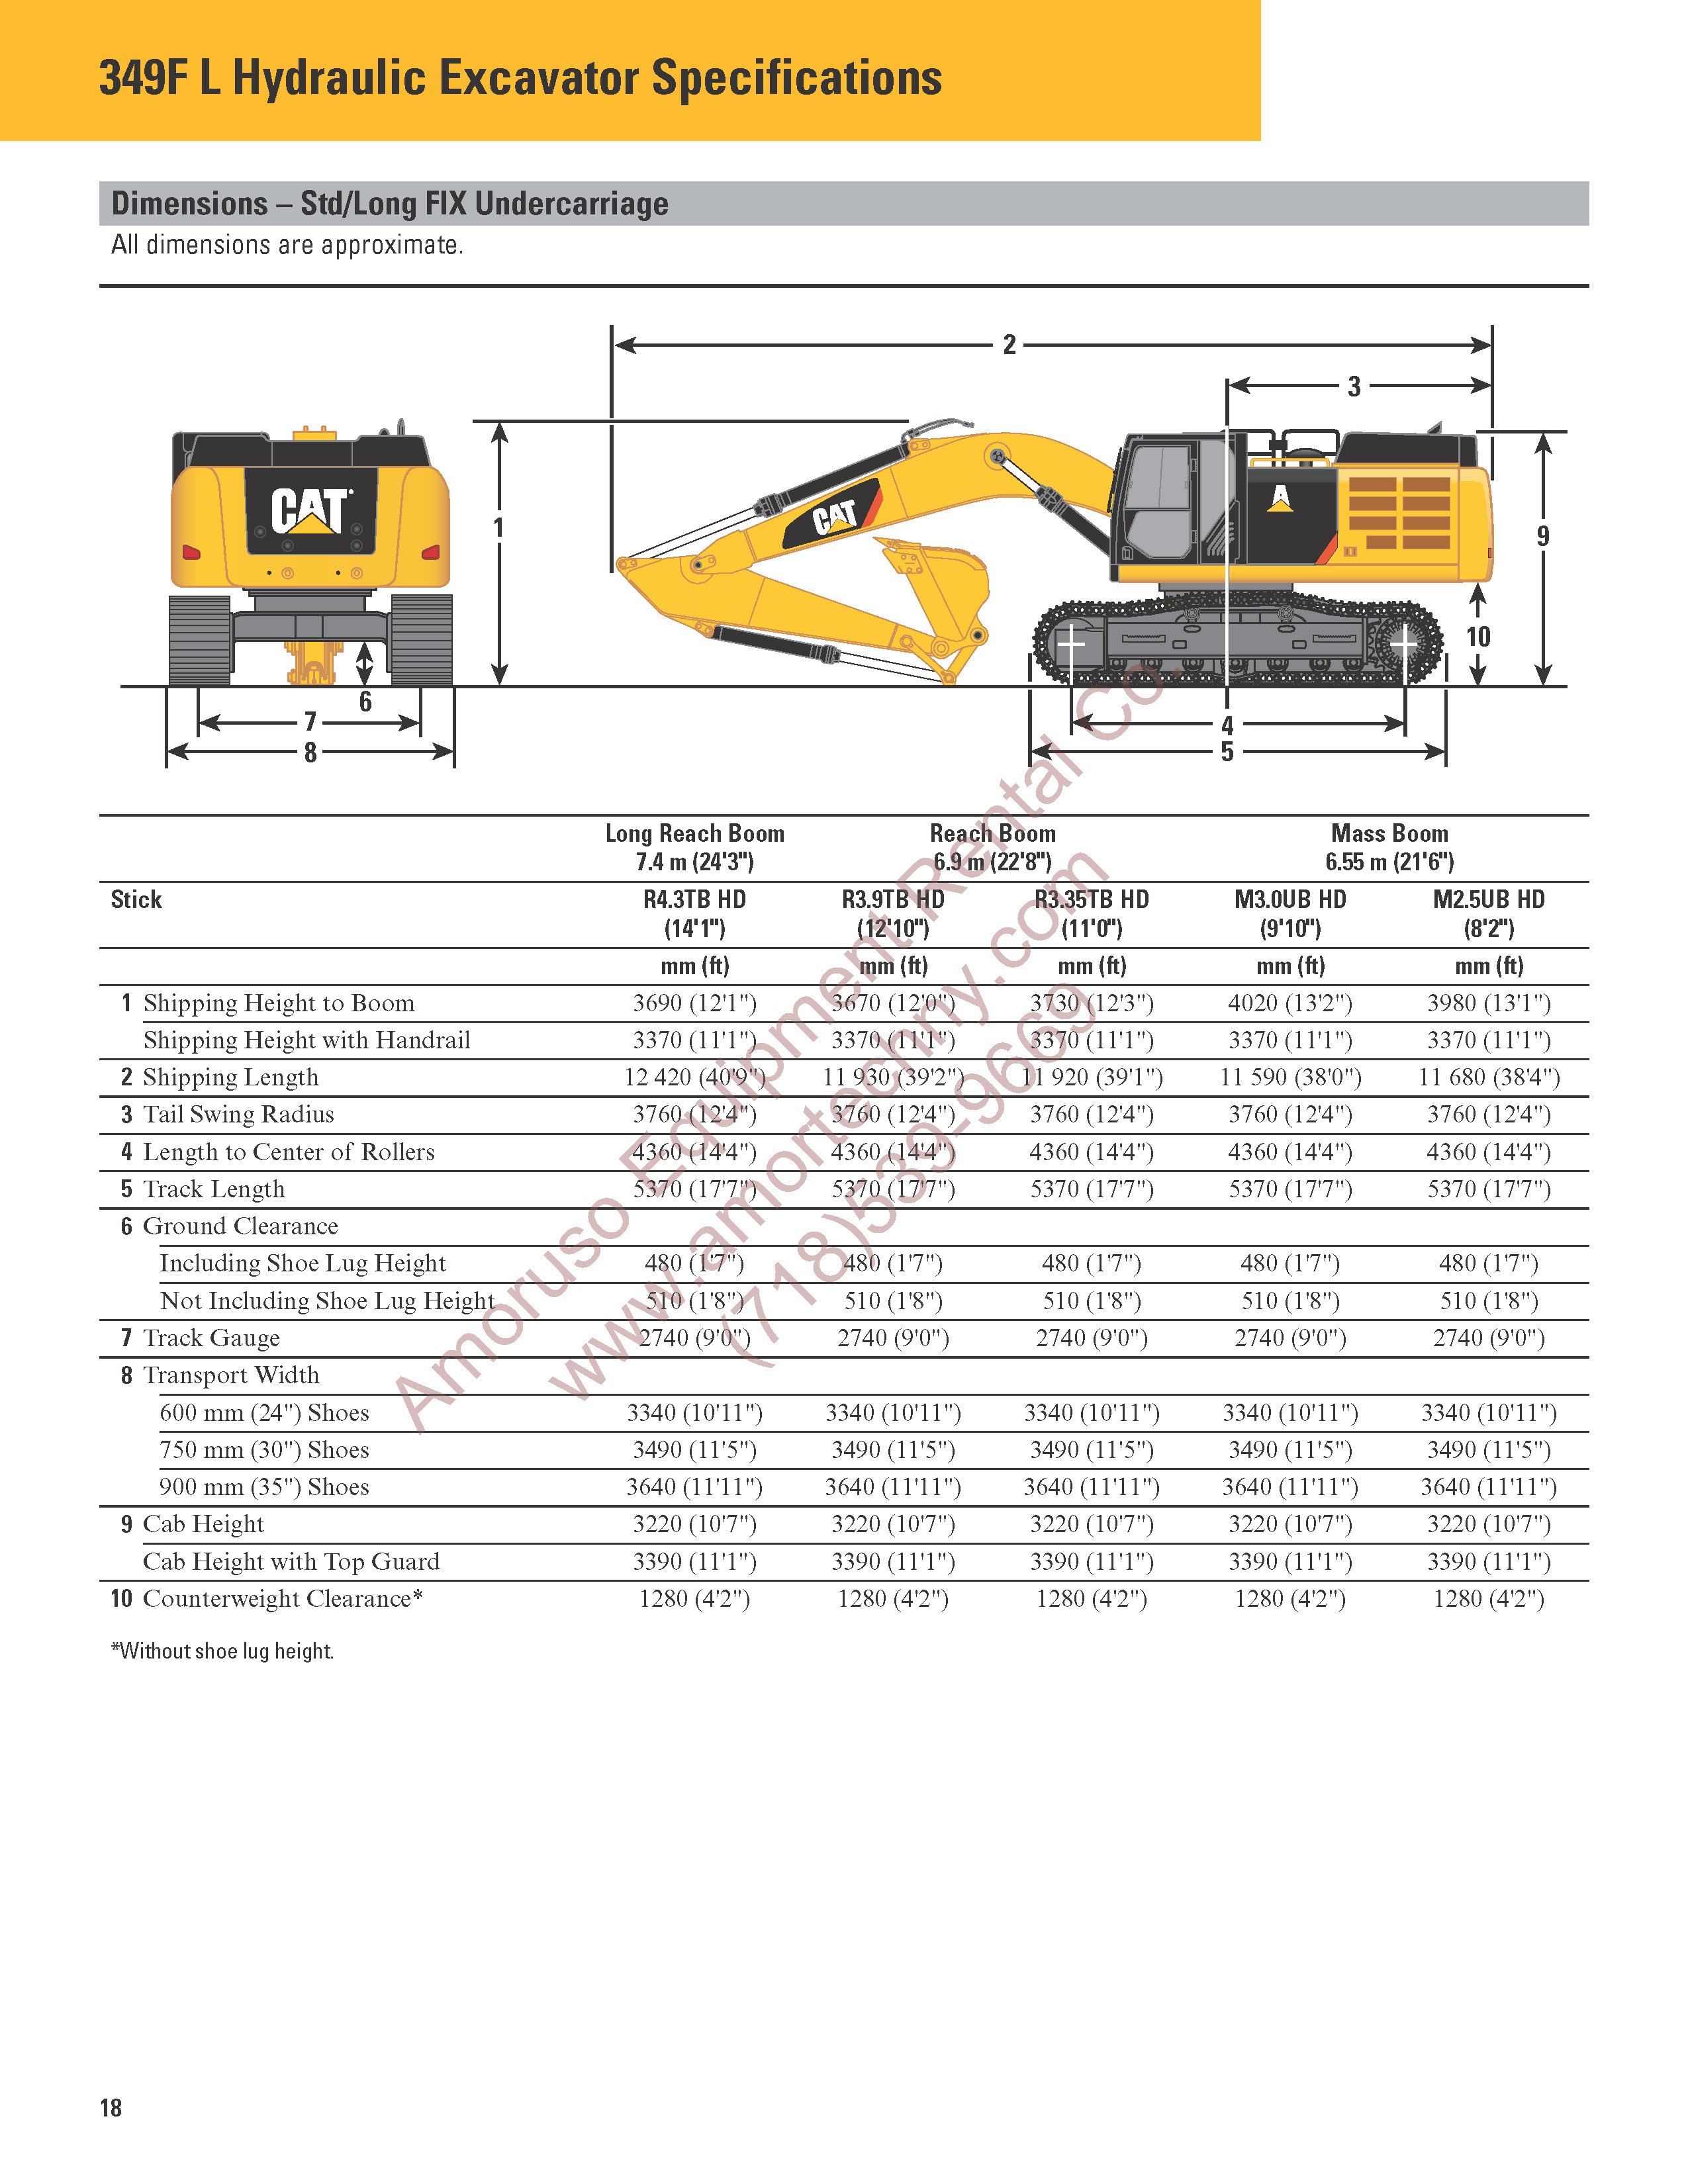 CAT 349F Track Excavator Tier IV Dimentions